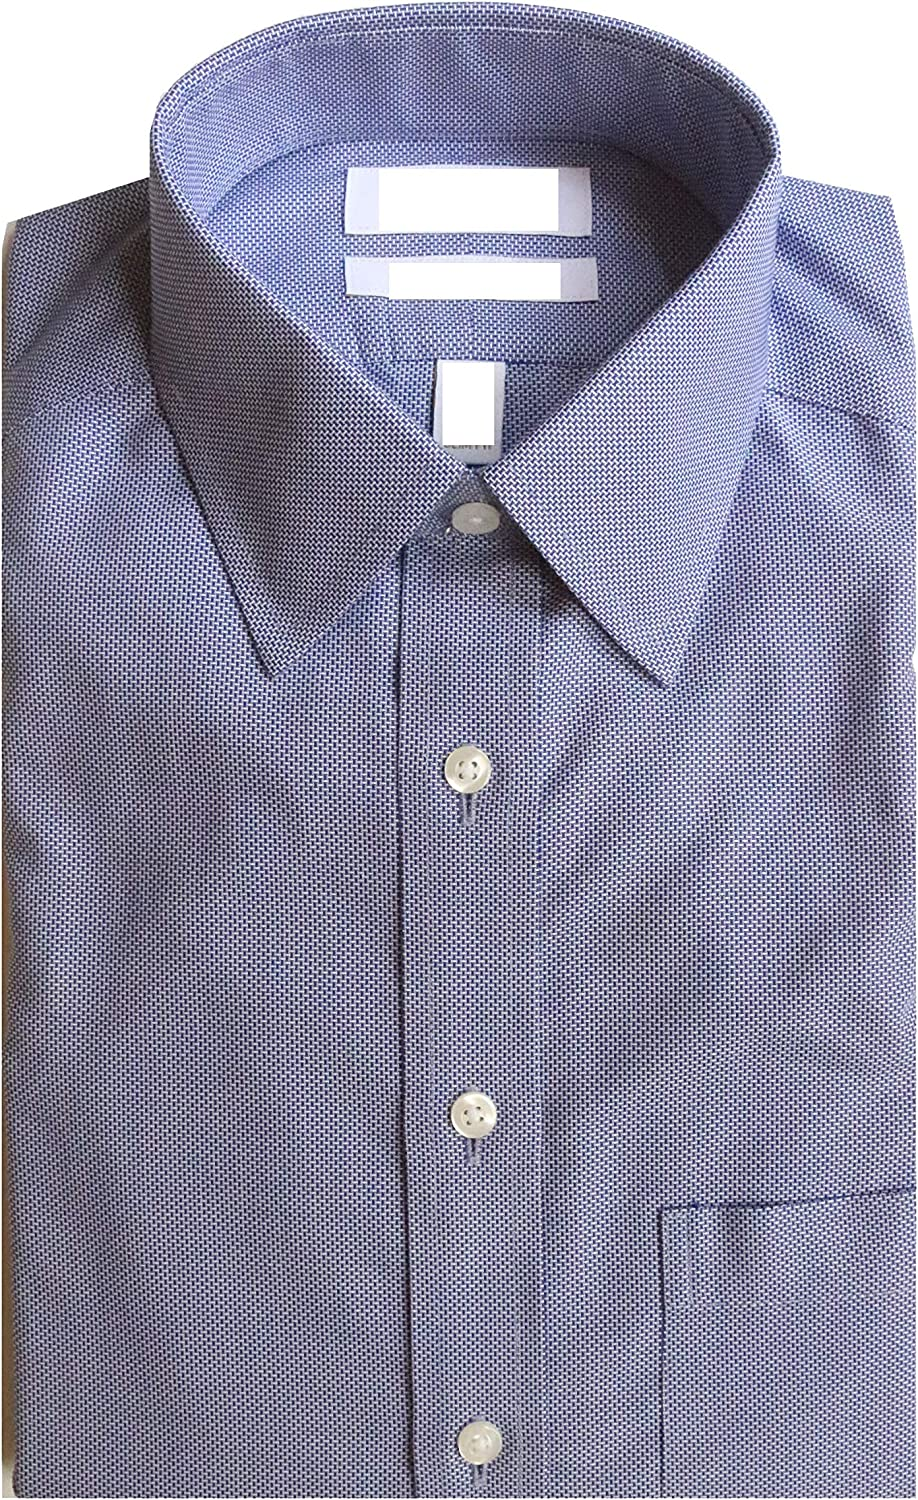 Gold Label Roundtree & Yorke Non-Iron Fitted Point Collar Check Dress Shirt G16A0149 Blue